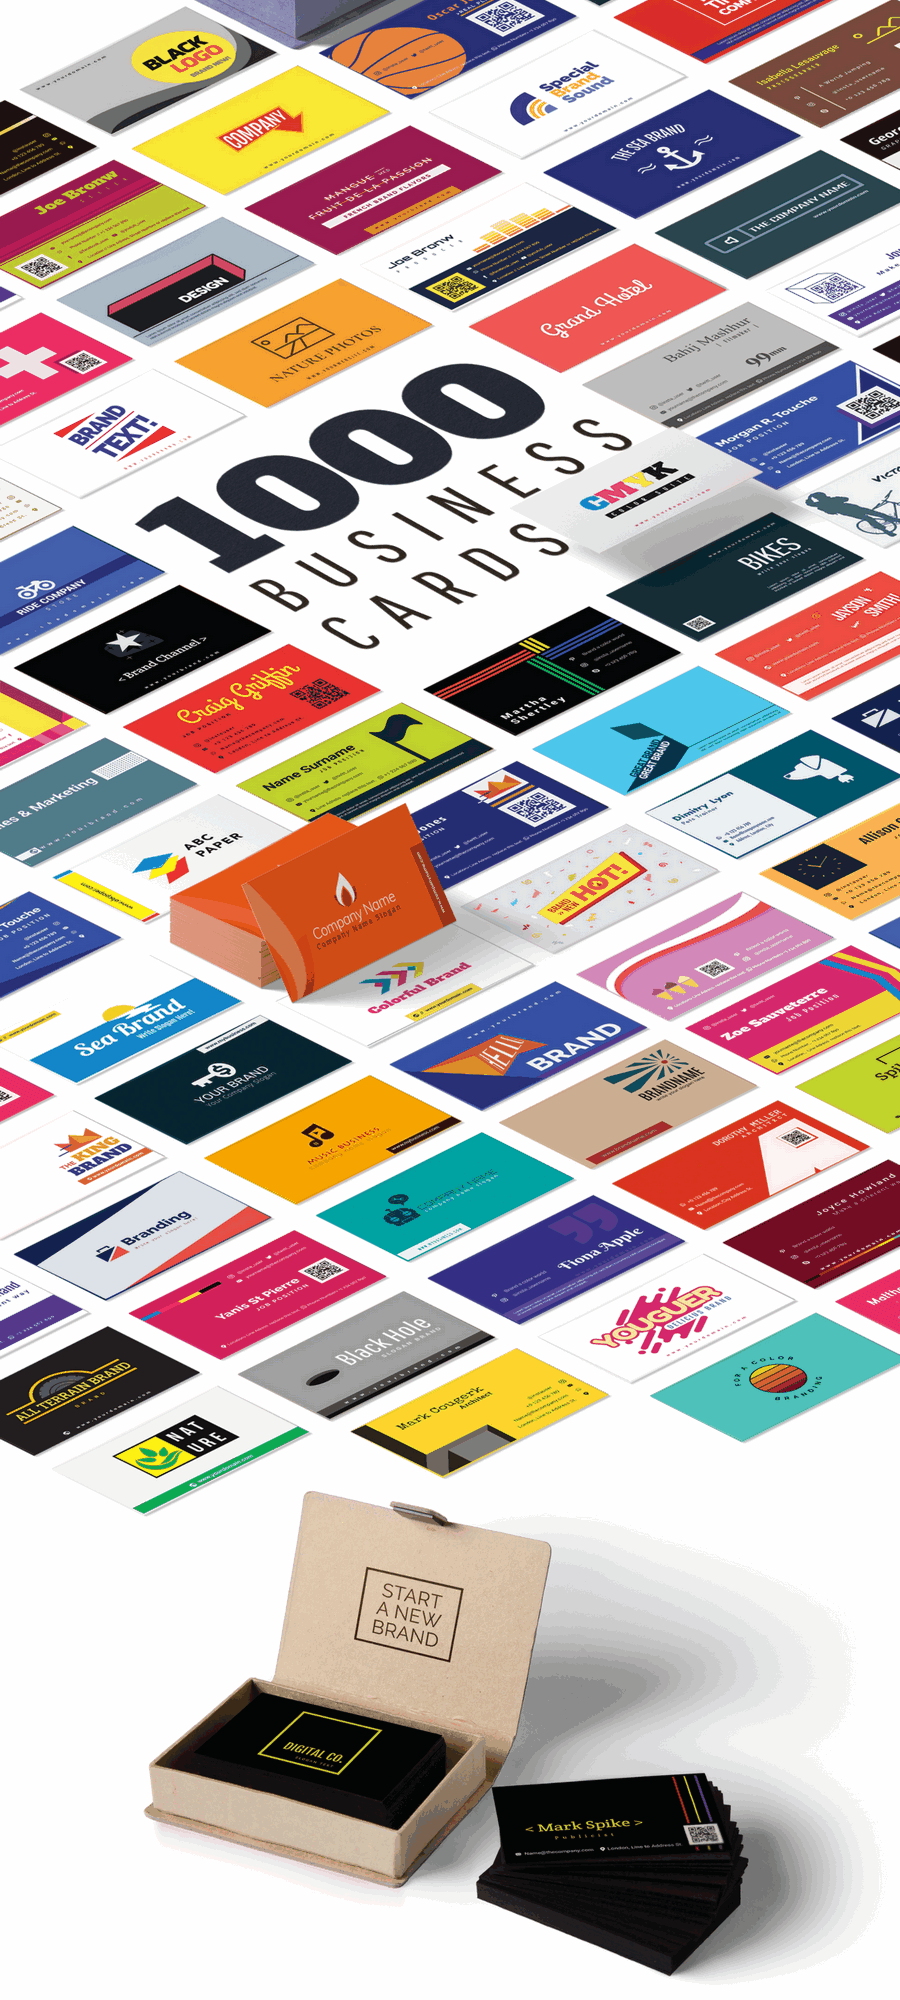 1000 Business Card Templates Pack - $14 - 900